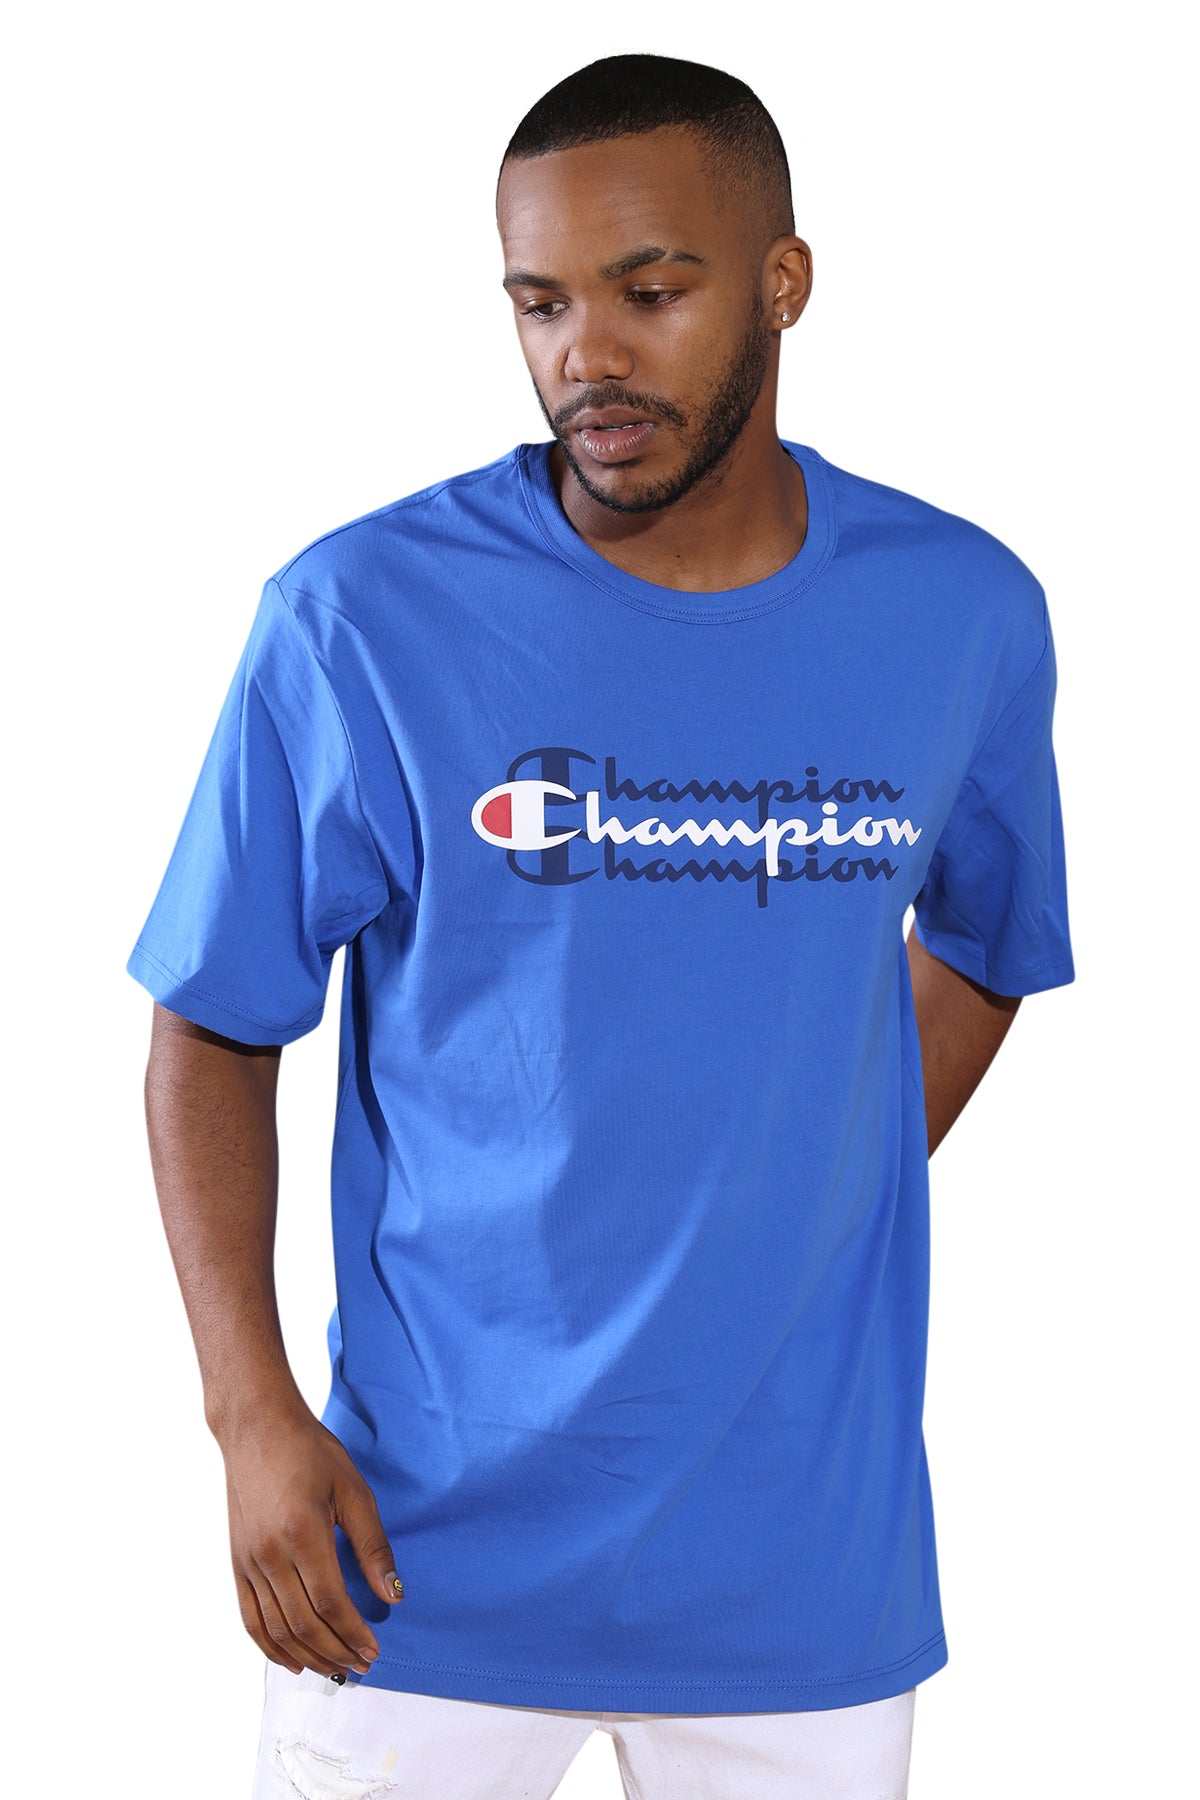 Champion 5Y2 Graphic Print Tee Front